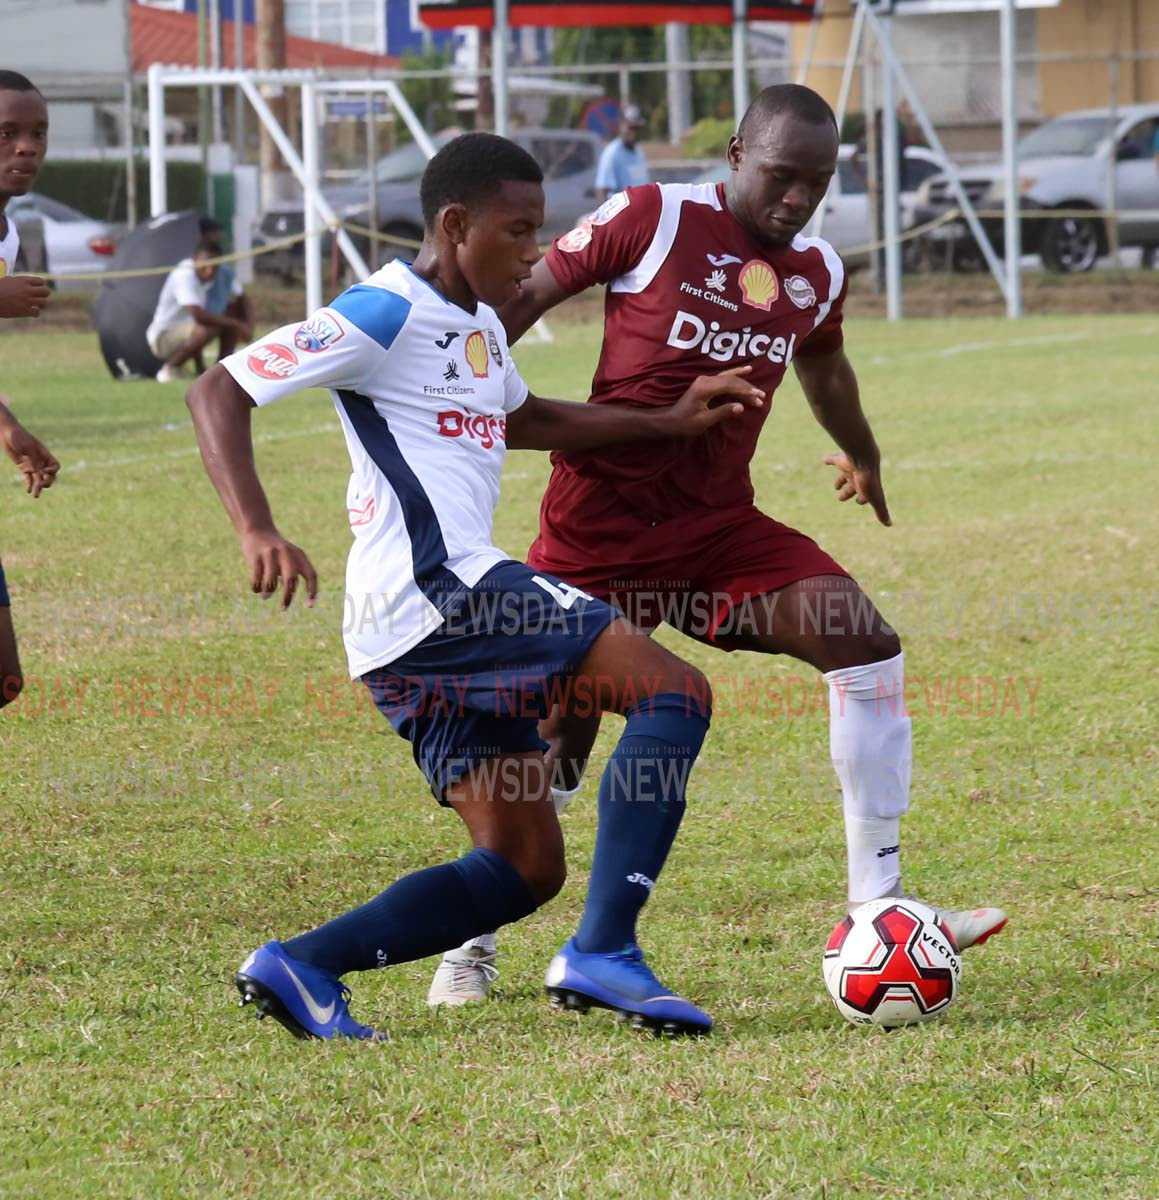 Mucurapo East's Jaheim Patrick,right, and Queen's Royal College's Ezekiel Armstrong battle for the ball in the SSFL opener,at Fatima Grounds, Mucurapo. PHOTO BY SUREASH CHOLAI